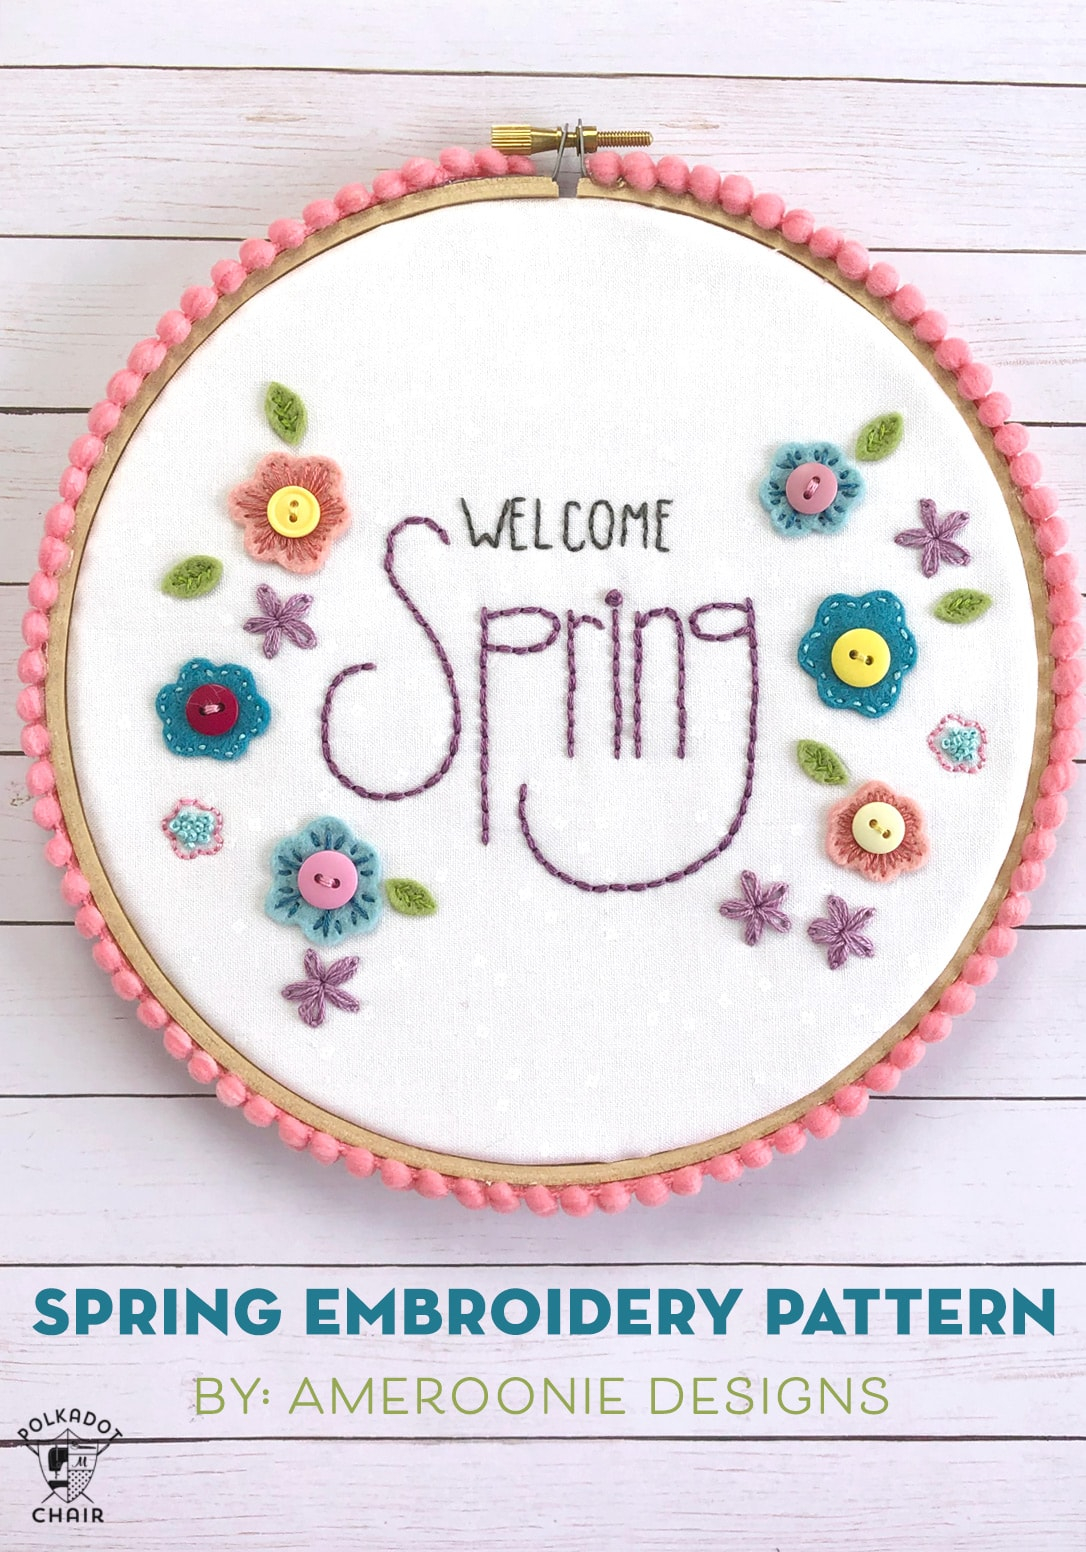 Embroidery For Beginners Free Patterns Welcome Spring Free Hand Embroidery Pattern The Polka Dot Chair